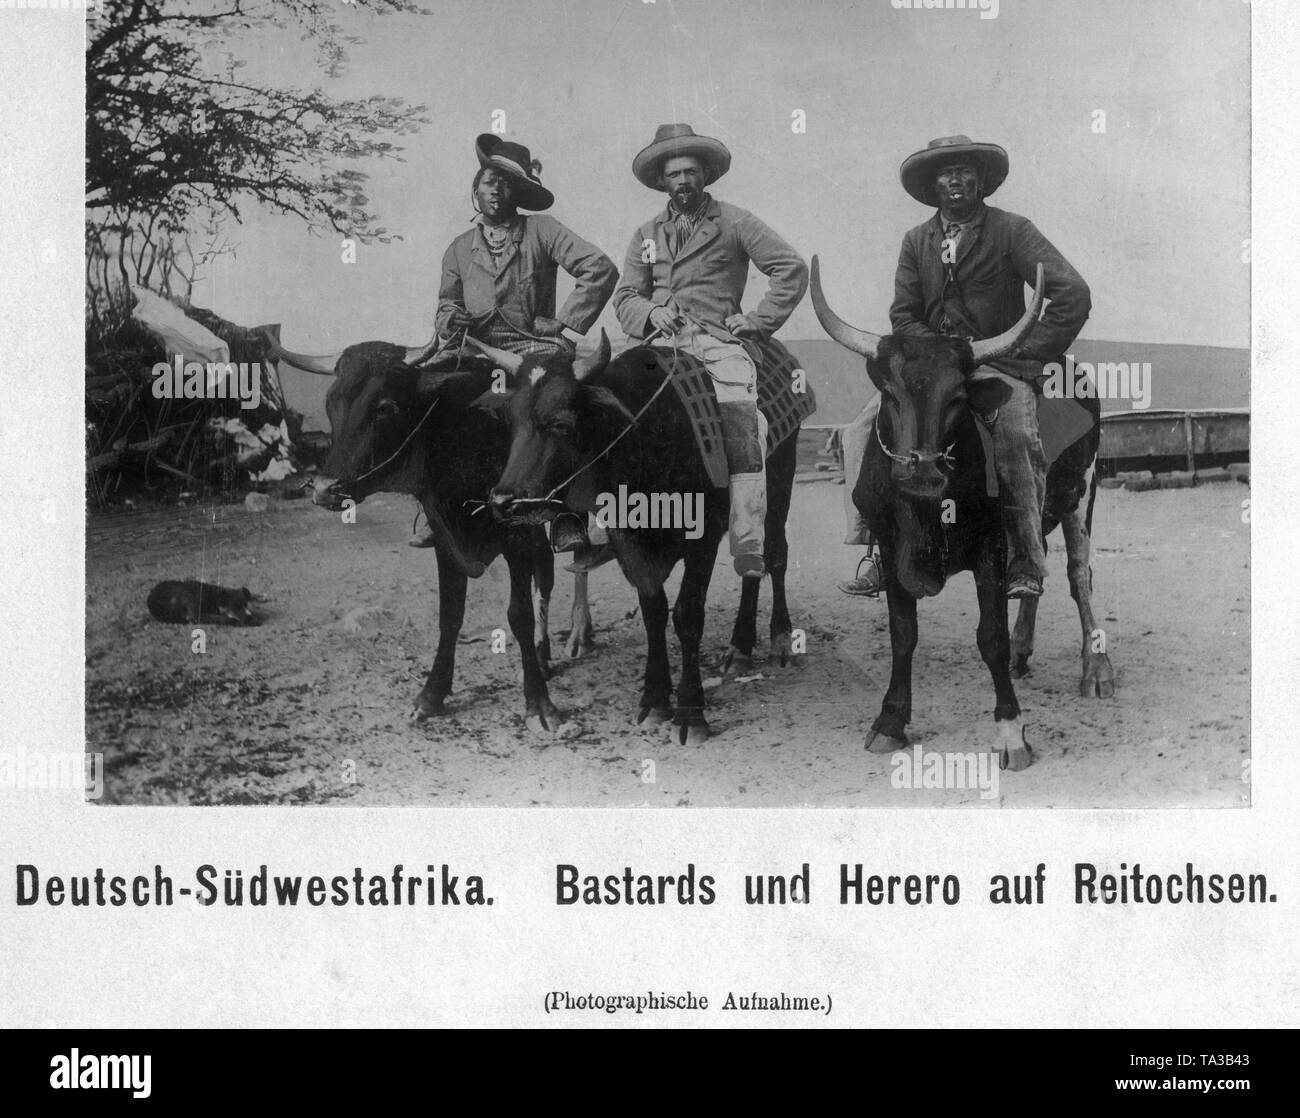 Three Baster and Herero men in European clothes riding oxen. - Stock Image